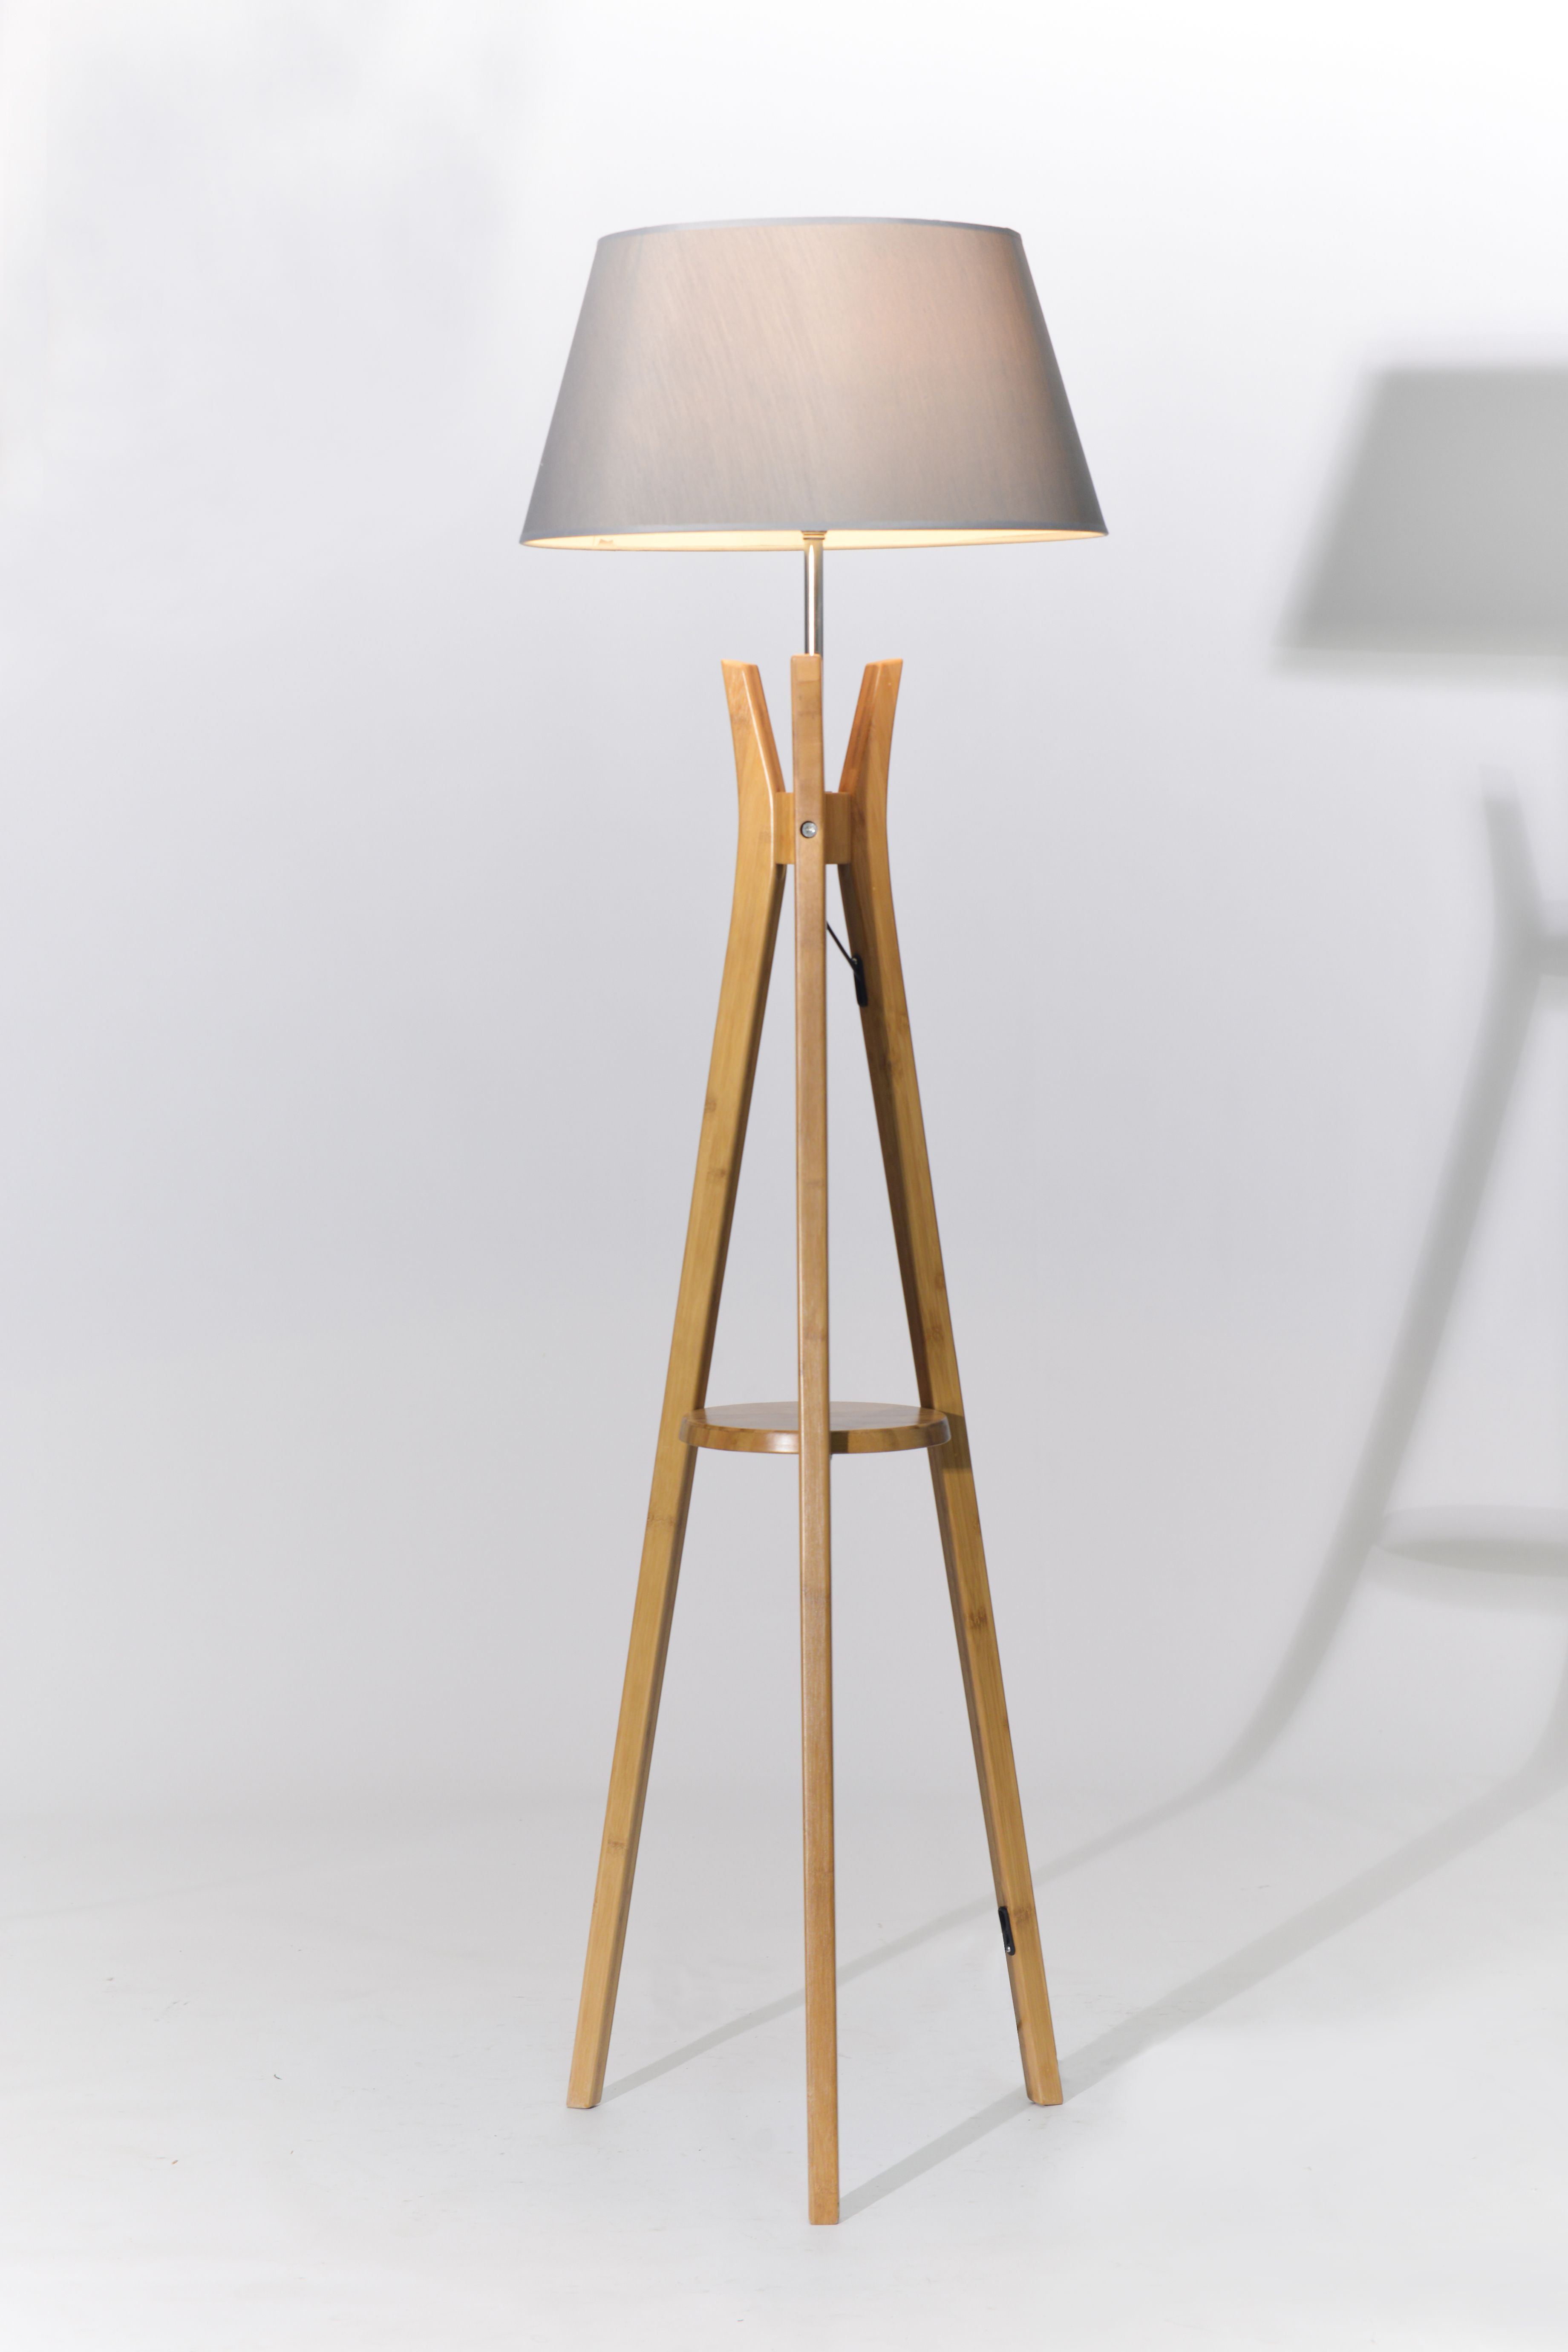 Luce Tripod Floor Lamp Combines The Material And Design To Give Your Space A Beautifully Natural Feeling This P Tripod Floor Lamps Floor Lamp White Shade Lamp